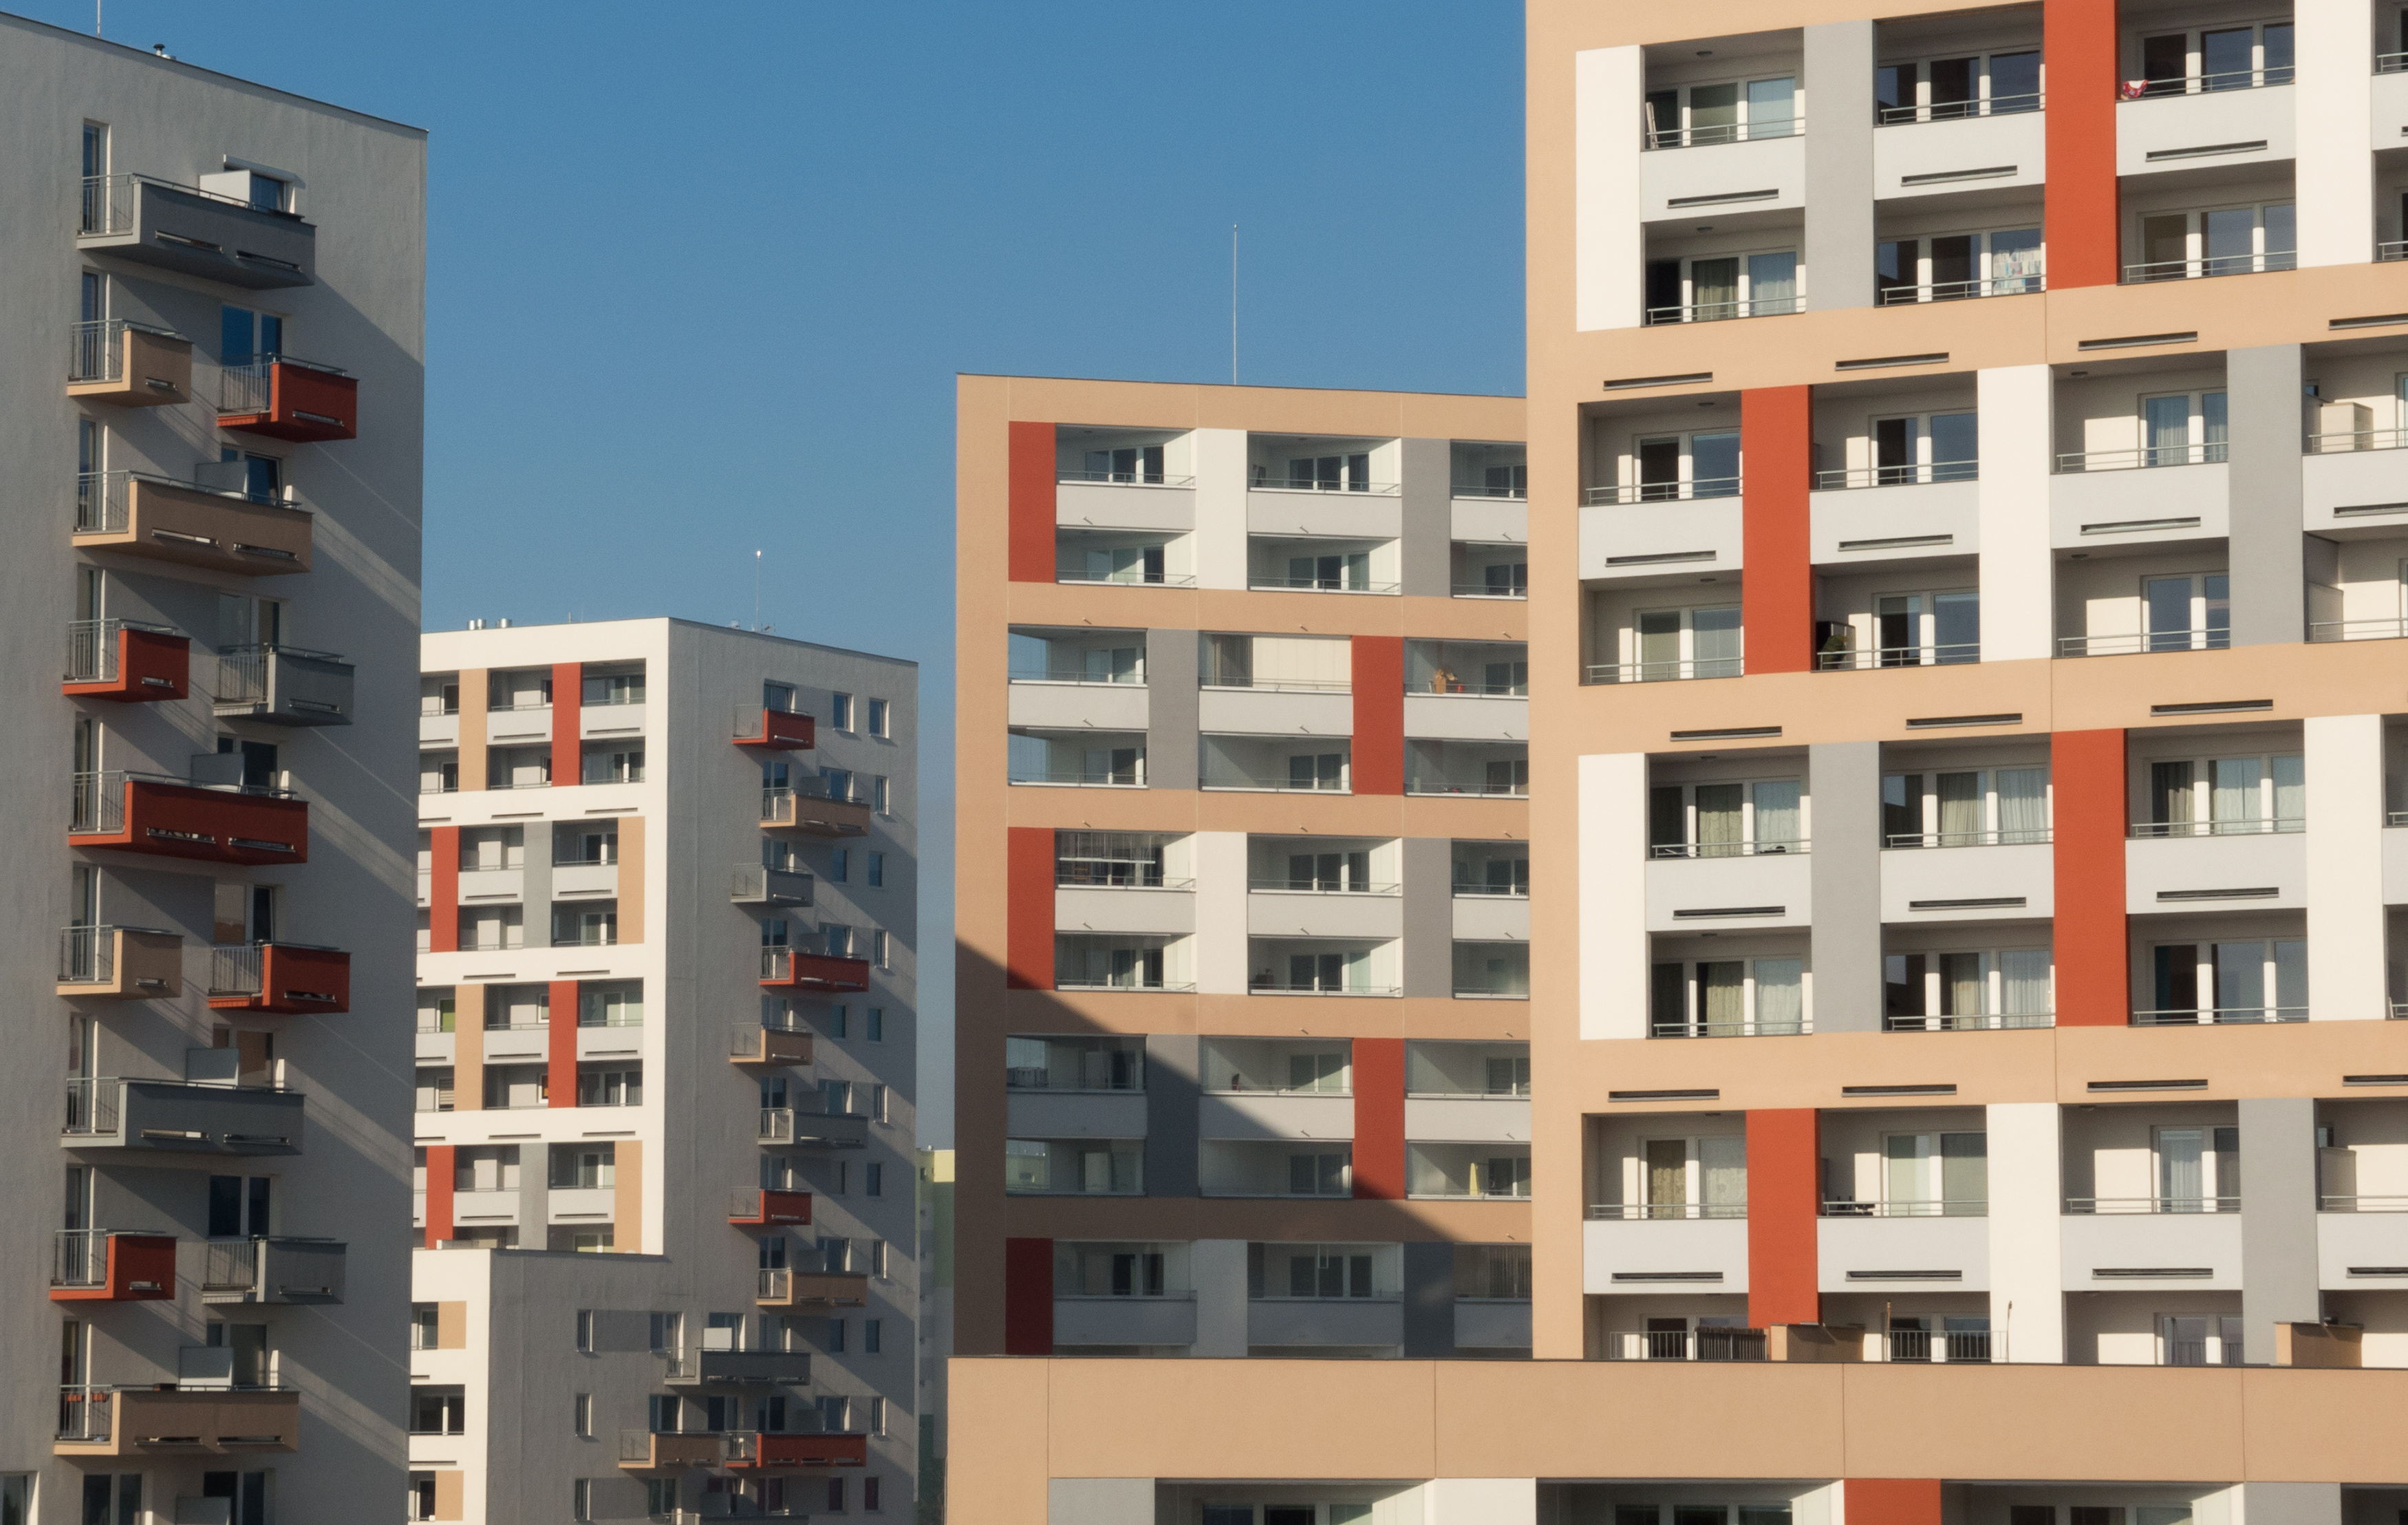 Apartment clipart tower block. Building images free download